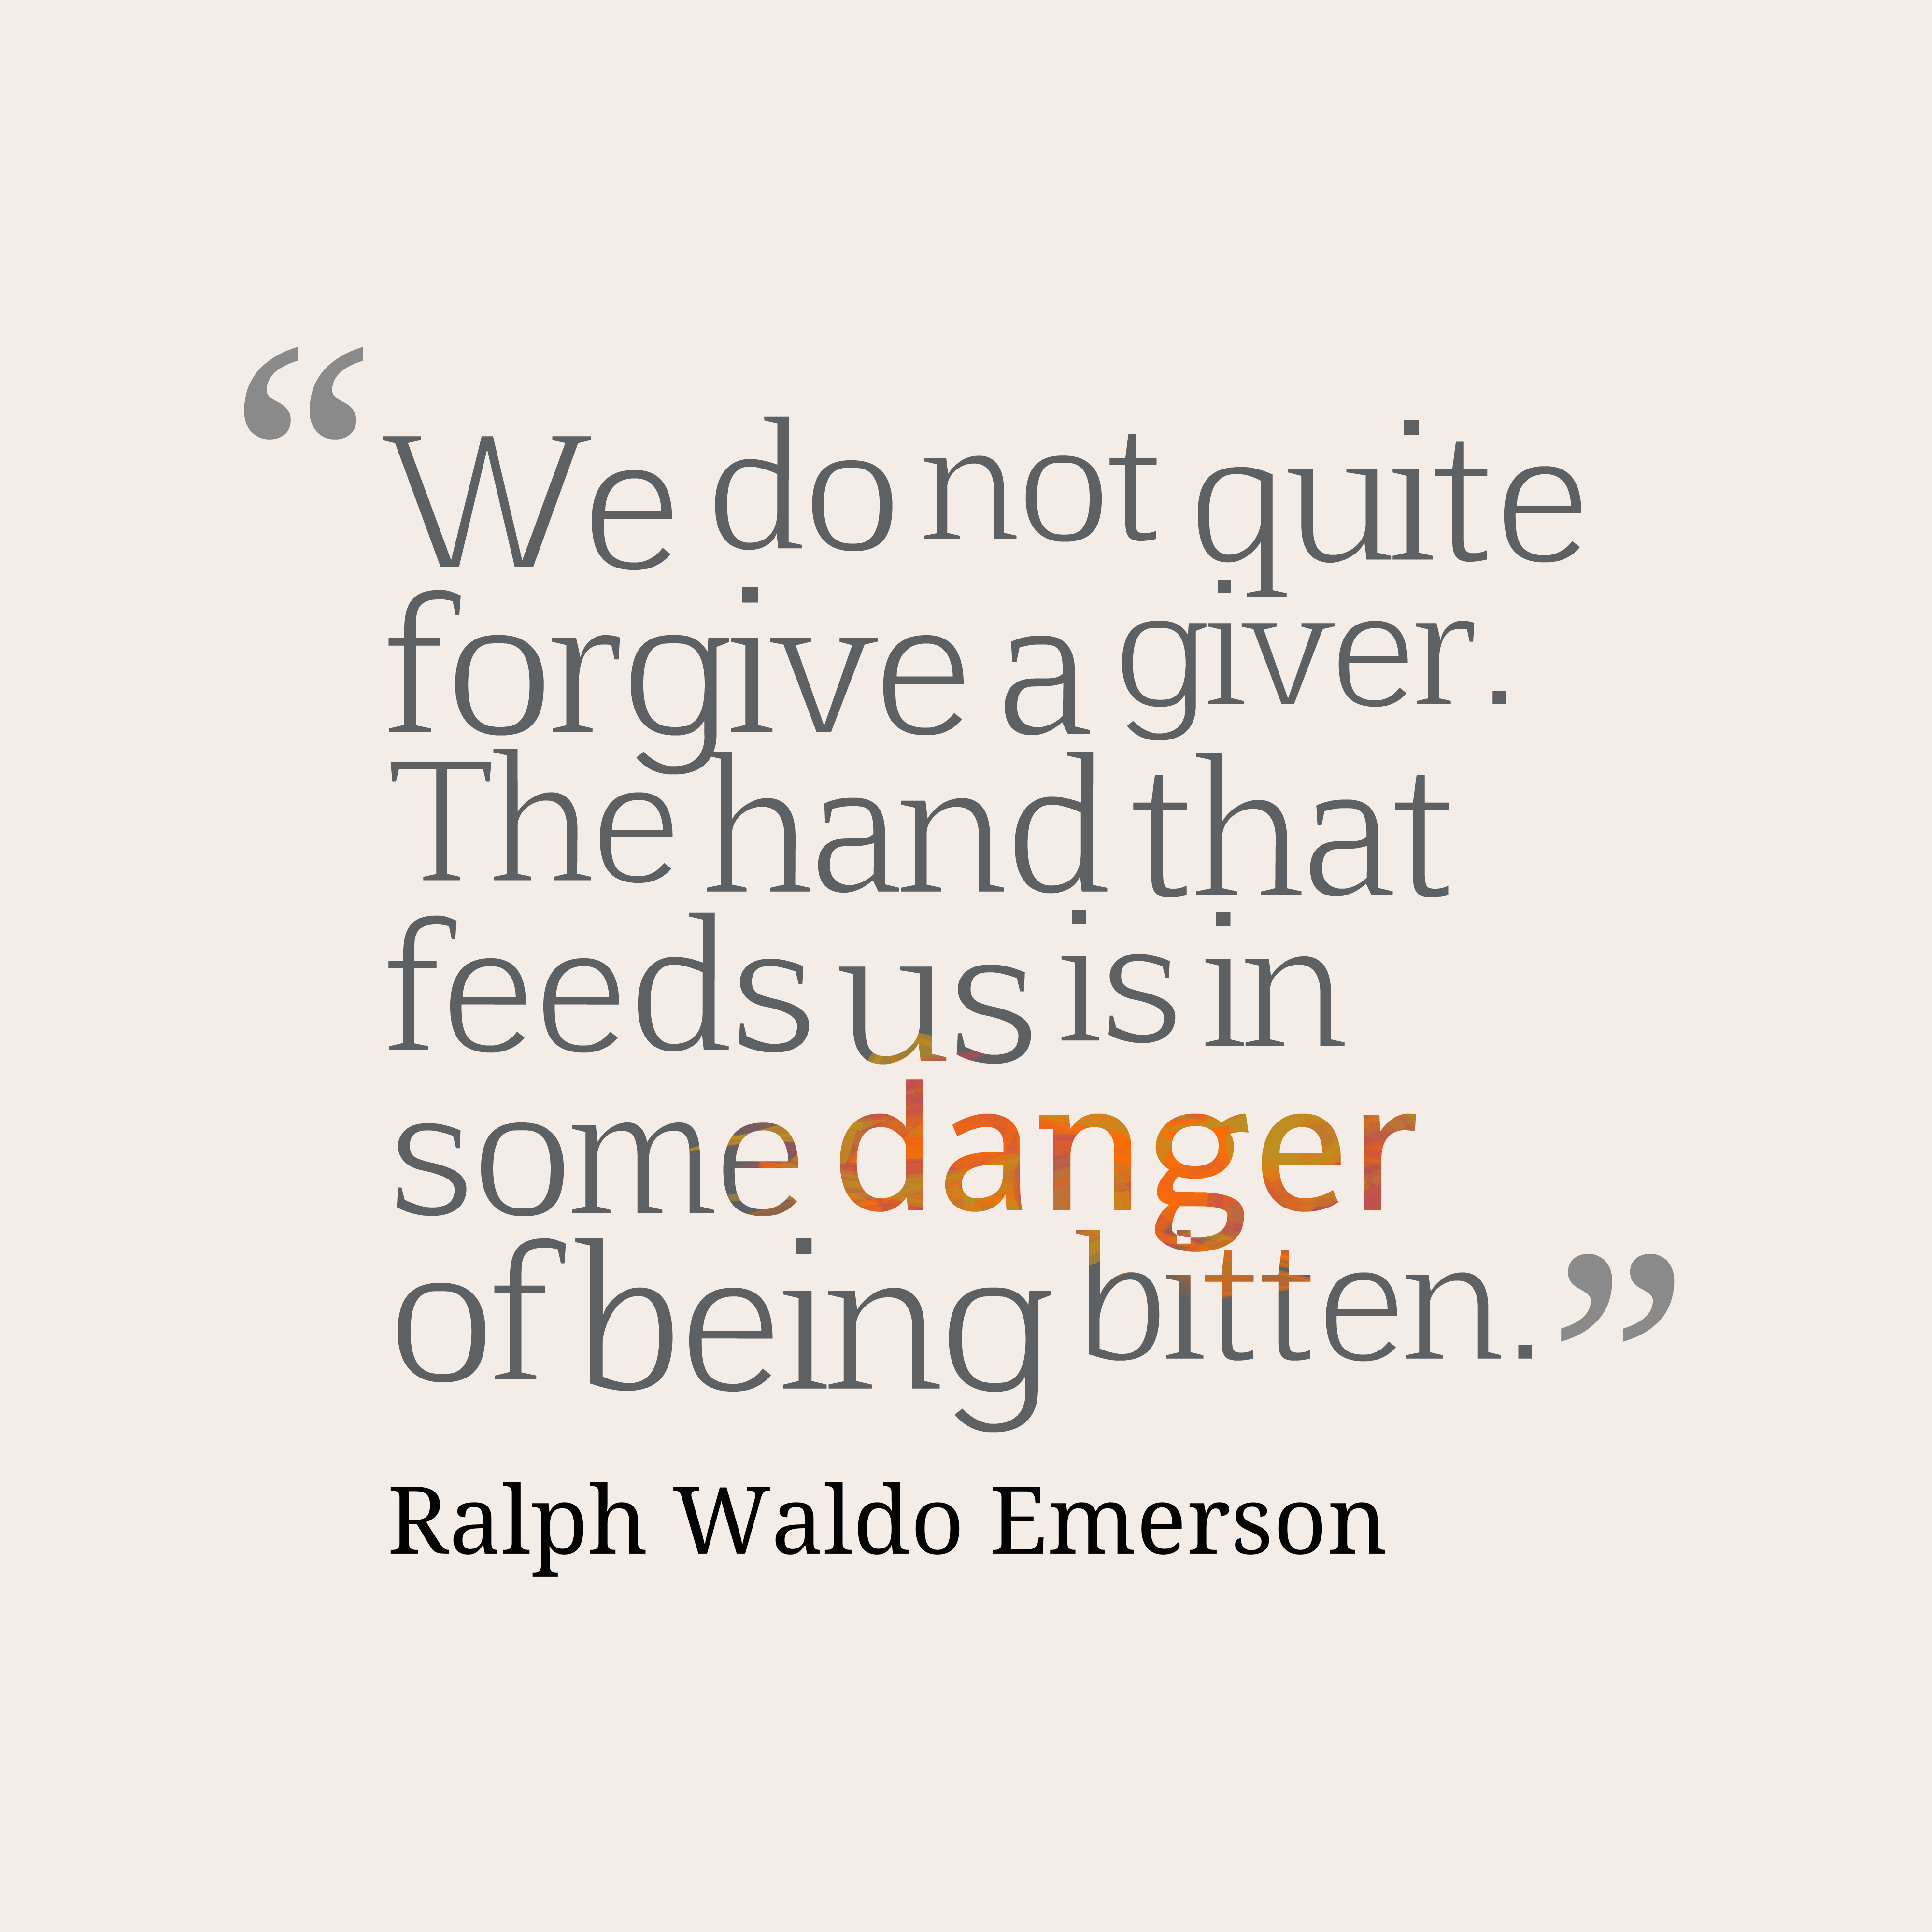 hi-res image of We do not quite forgive a giver. The hand that feeds ...